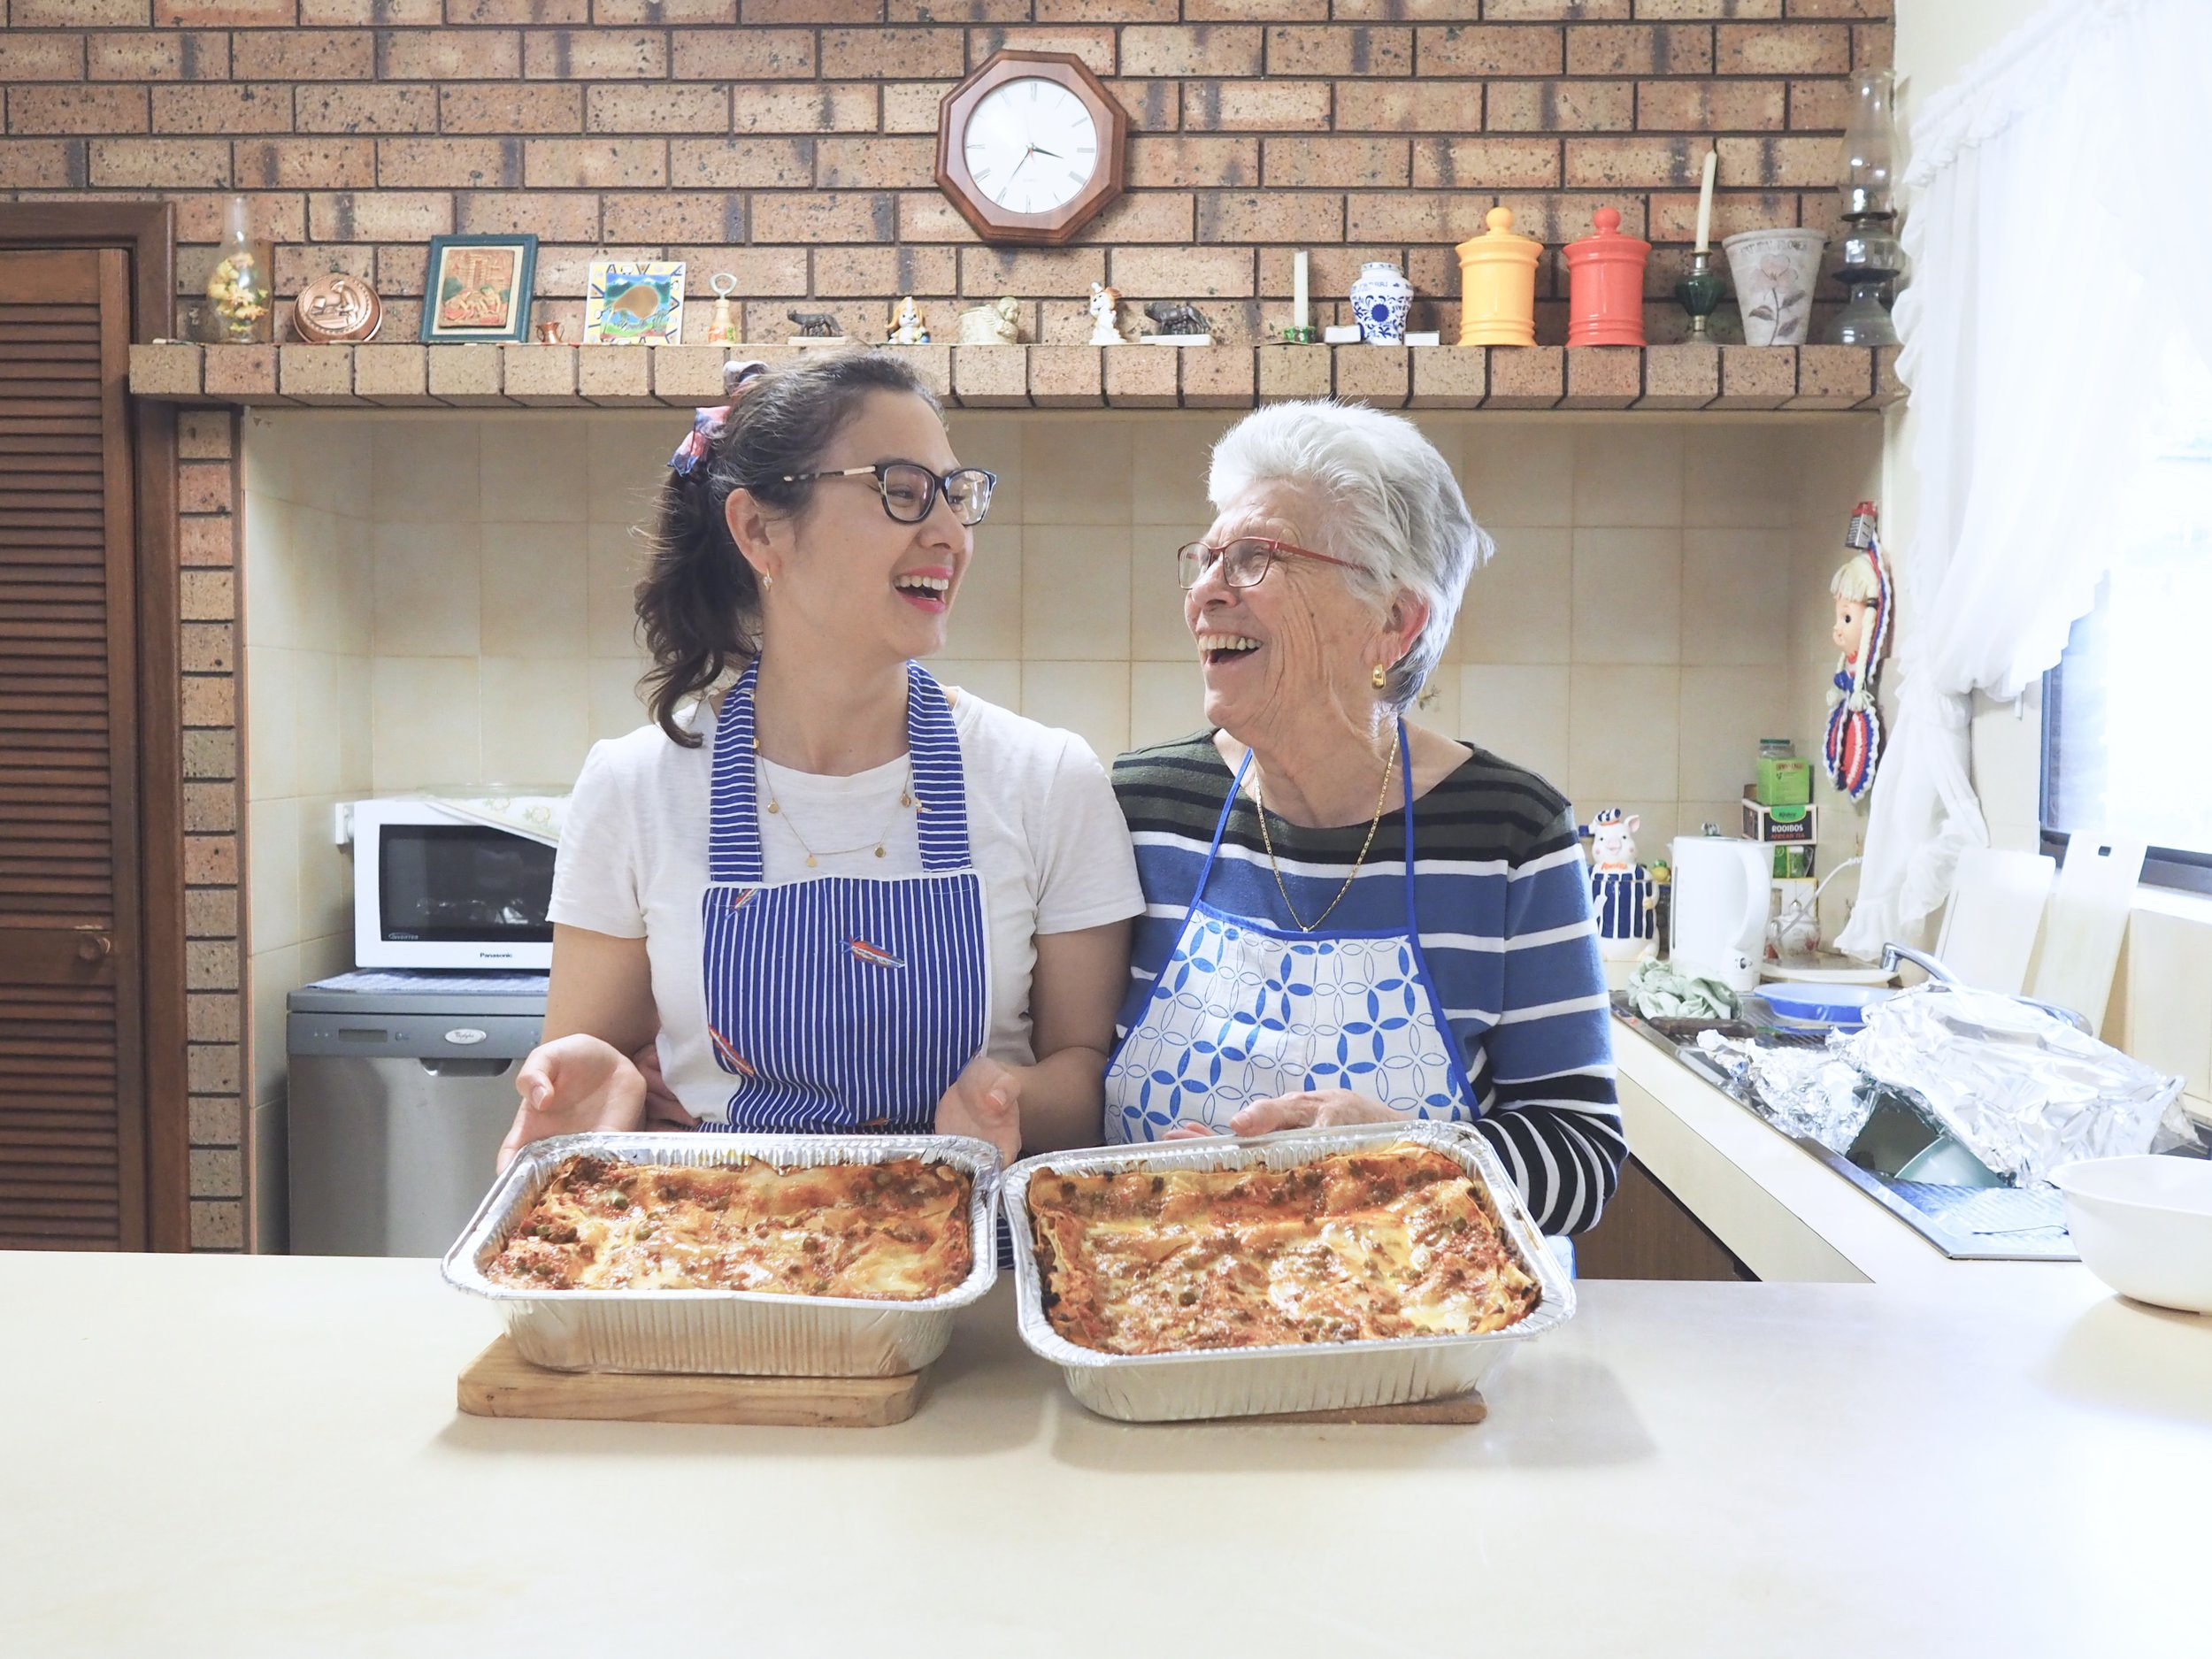 How To Make Lasagne Cooking With Nonna Episode 2